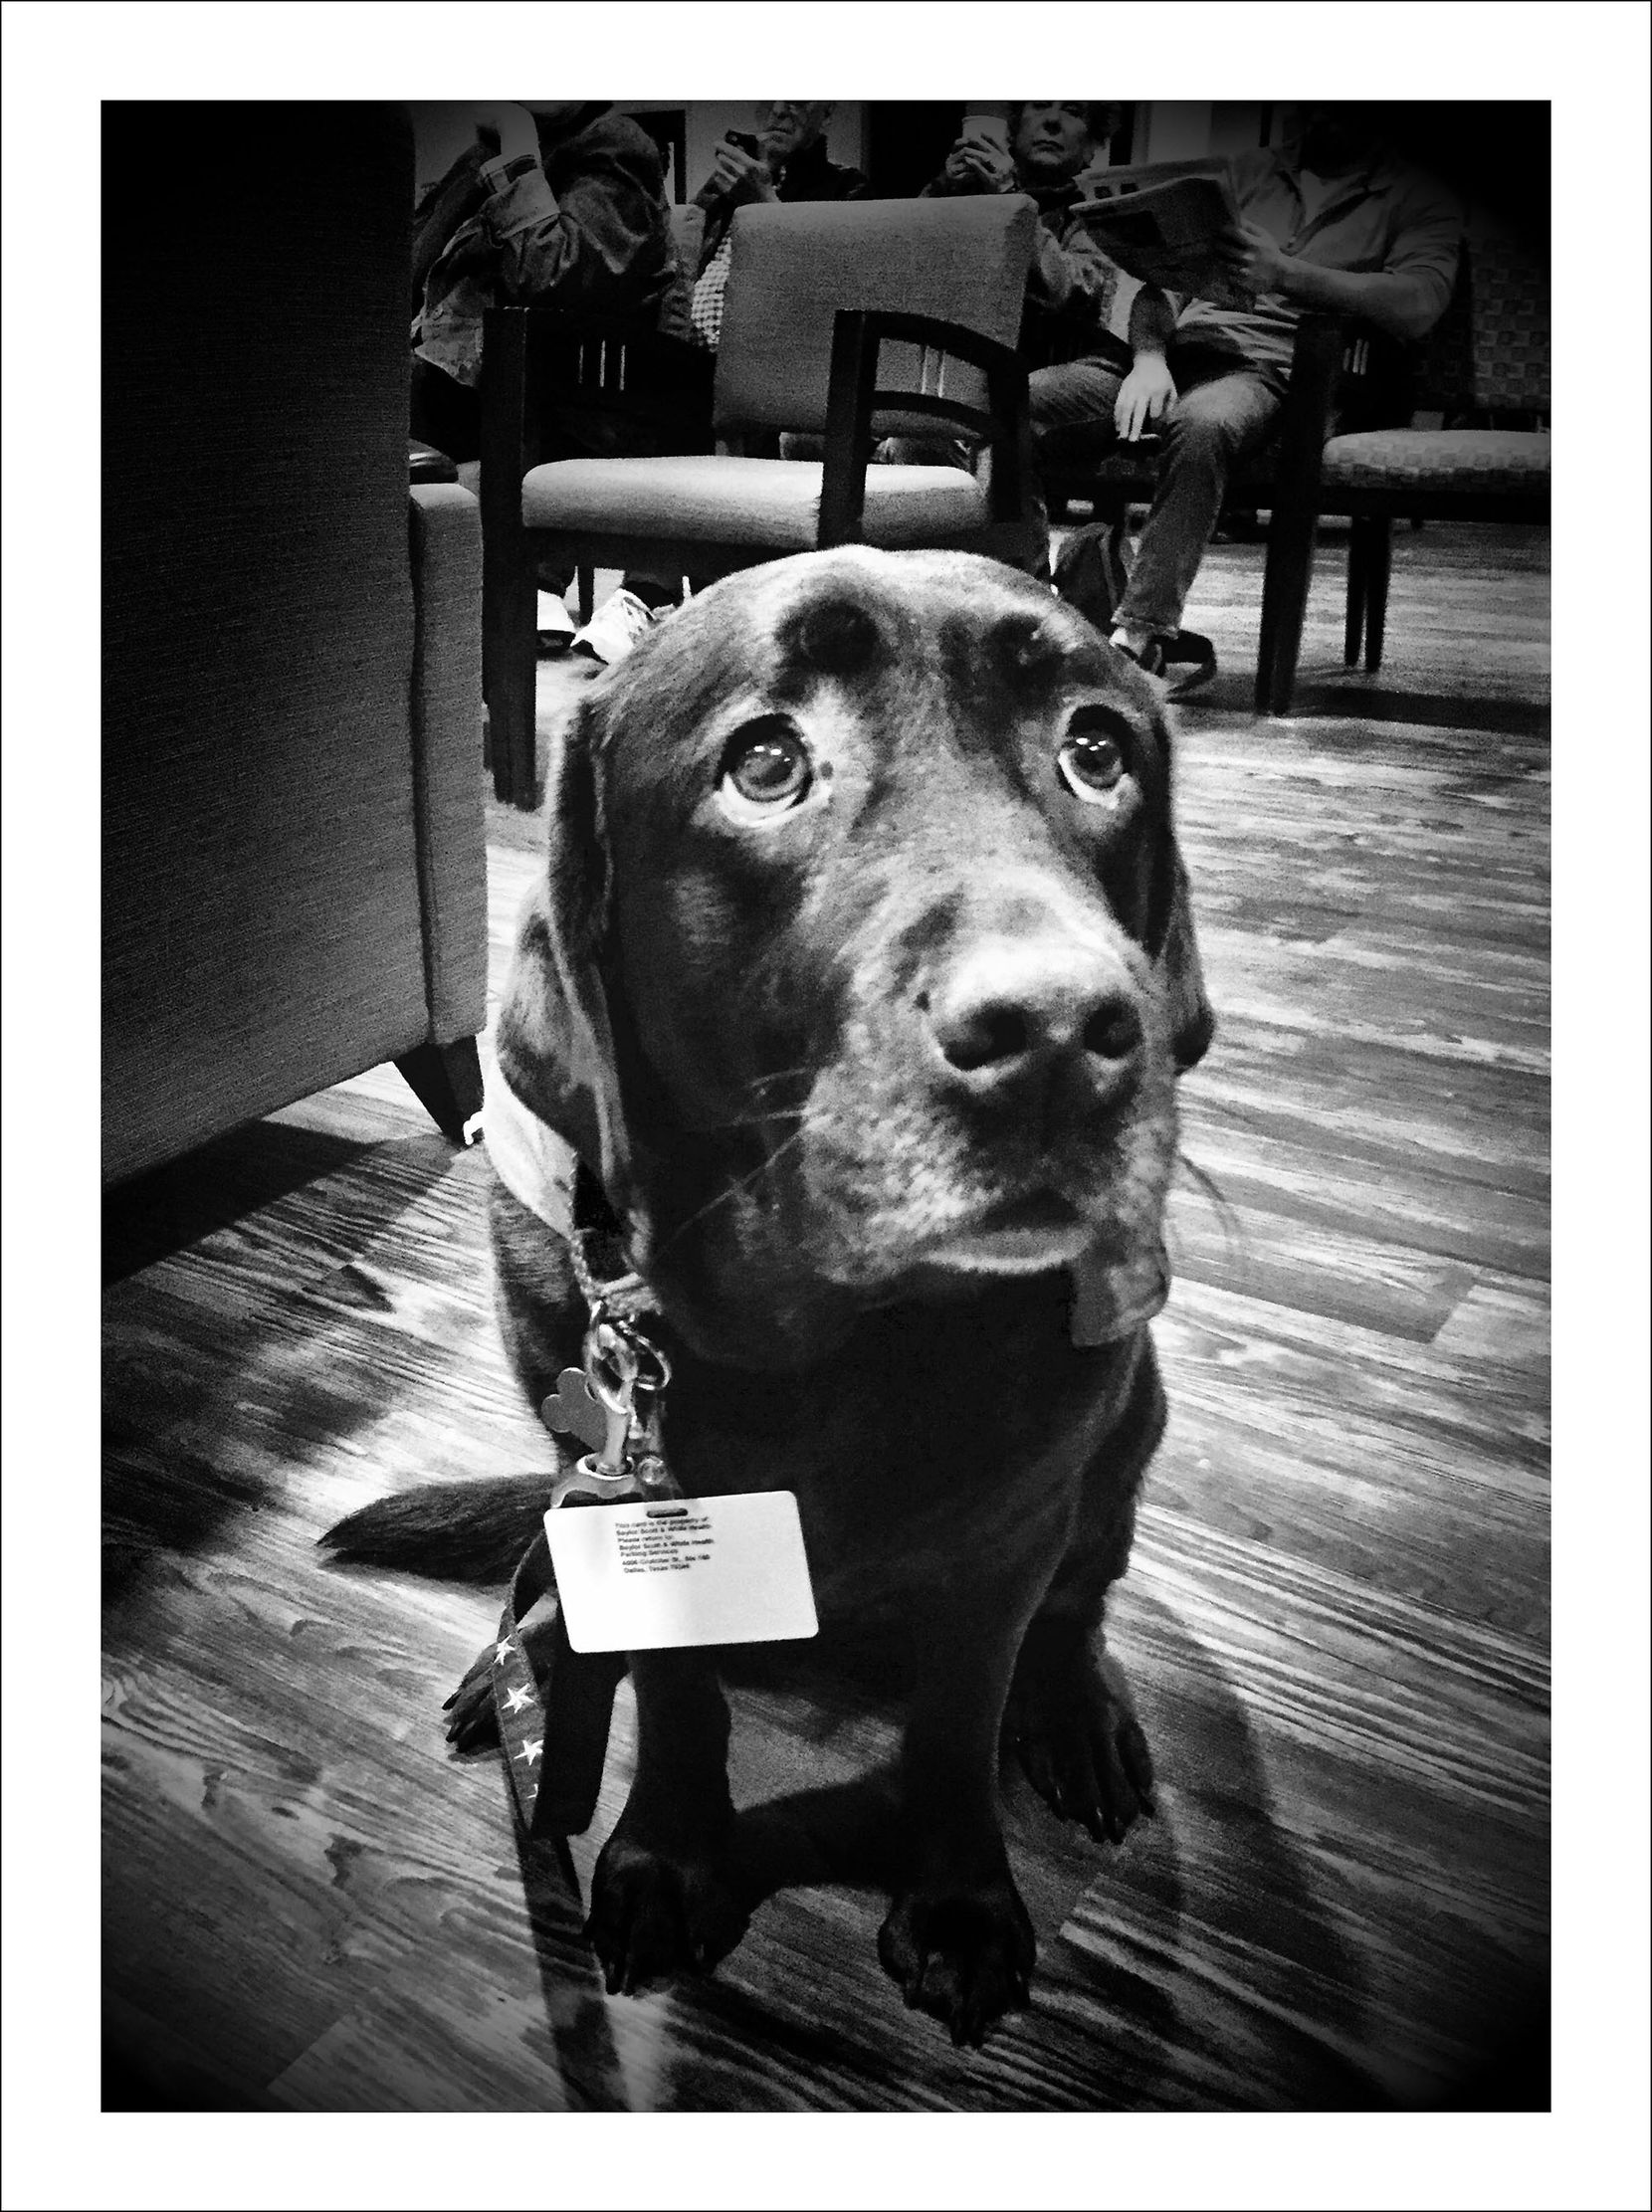 12/12/16 — Therapy dog in the chemotherapy waiting room.